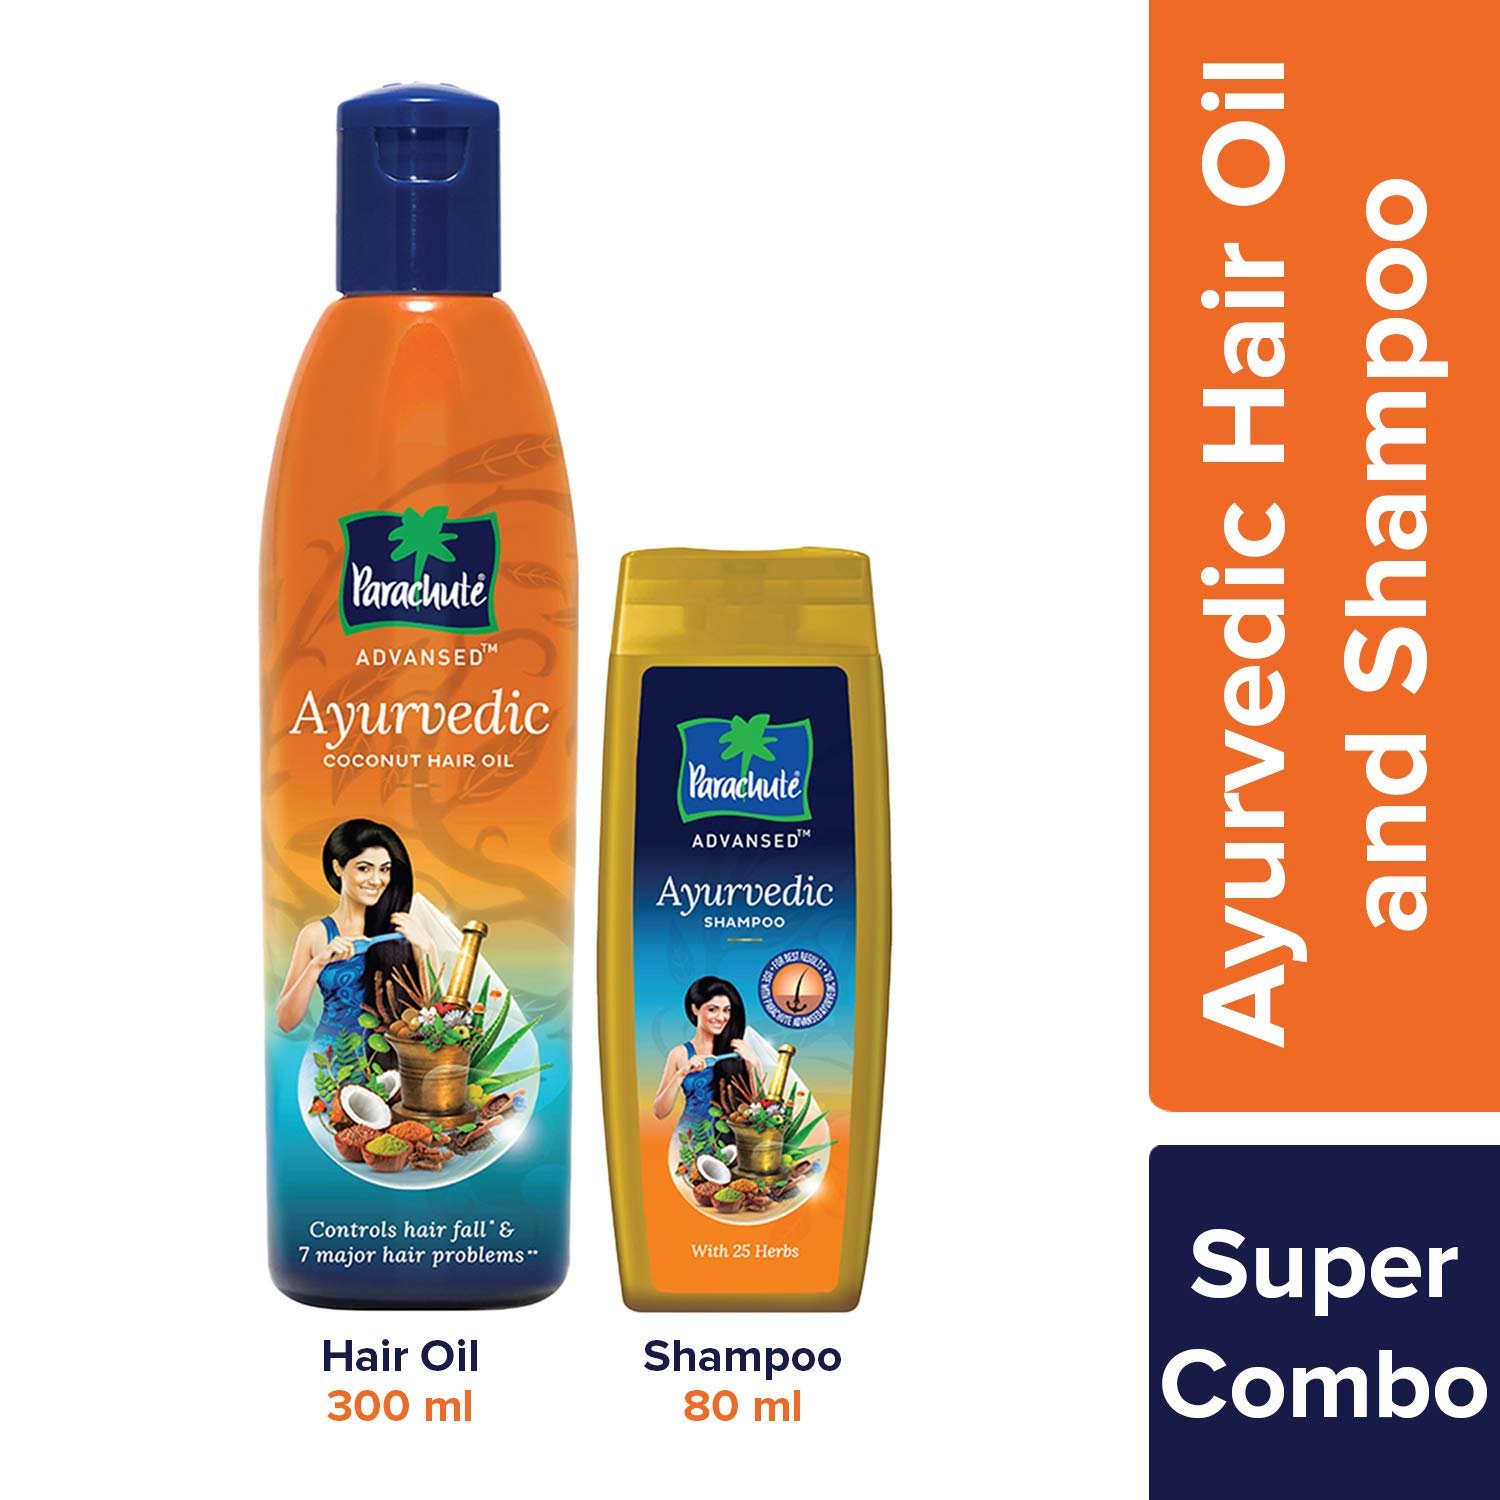 Parachute Advansed Ayurvedic Hair Oil, 300 ml & Shampoo, 80 ml (Controls Hair Fall)